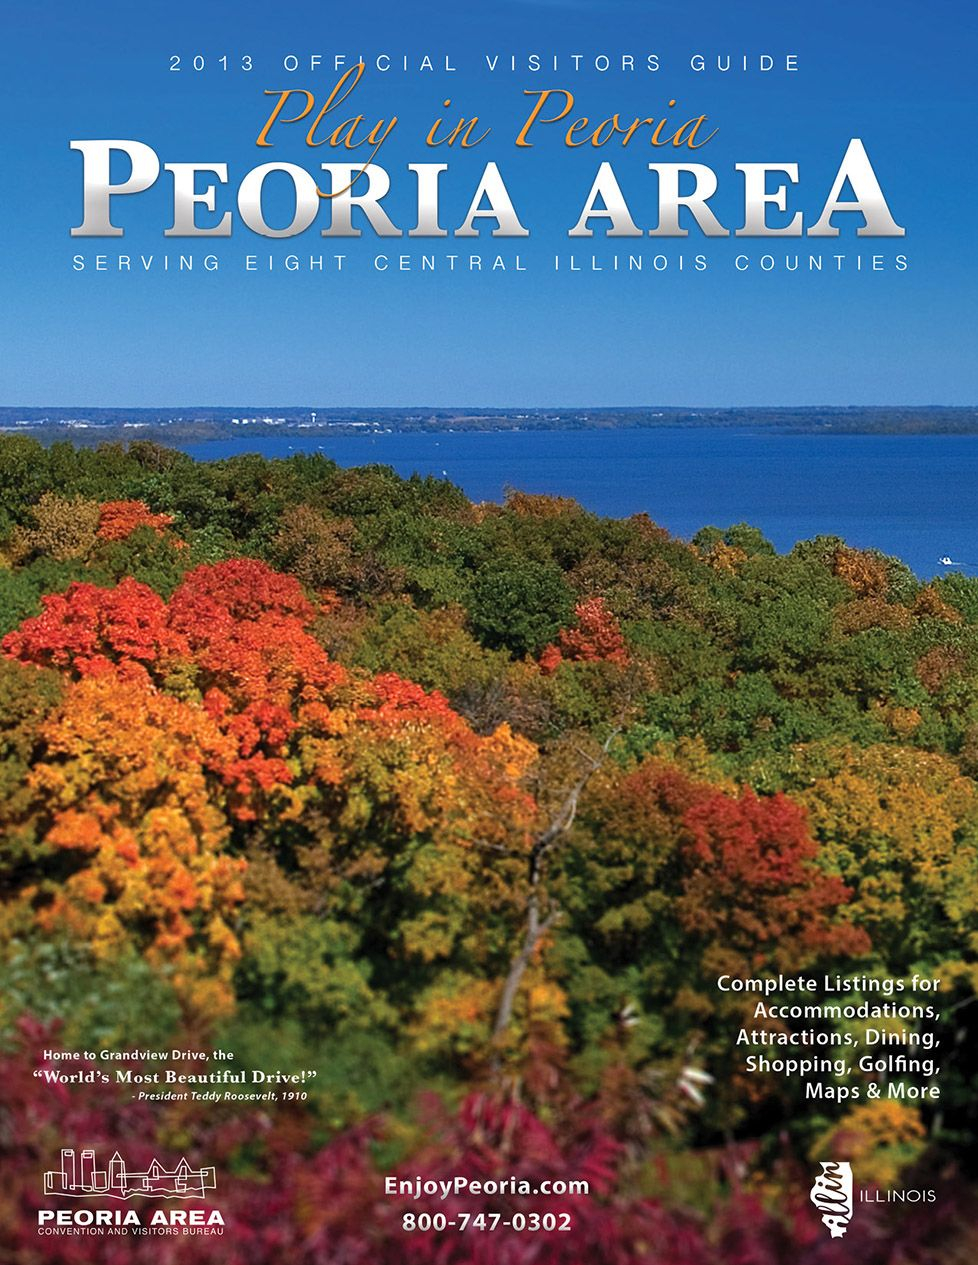 Peoria Il Events Calendar | Events, Festivals, Gatherings Within Calendar Events Peoria Il